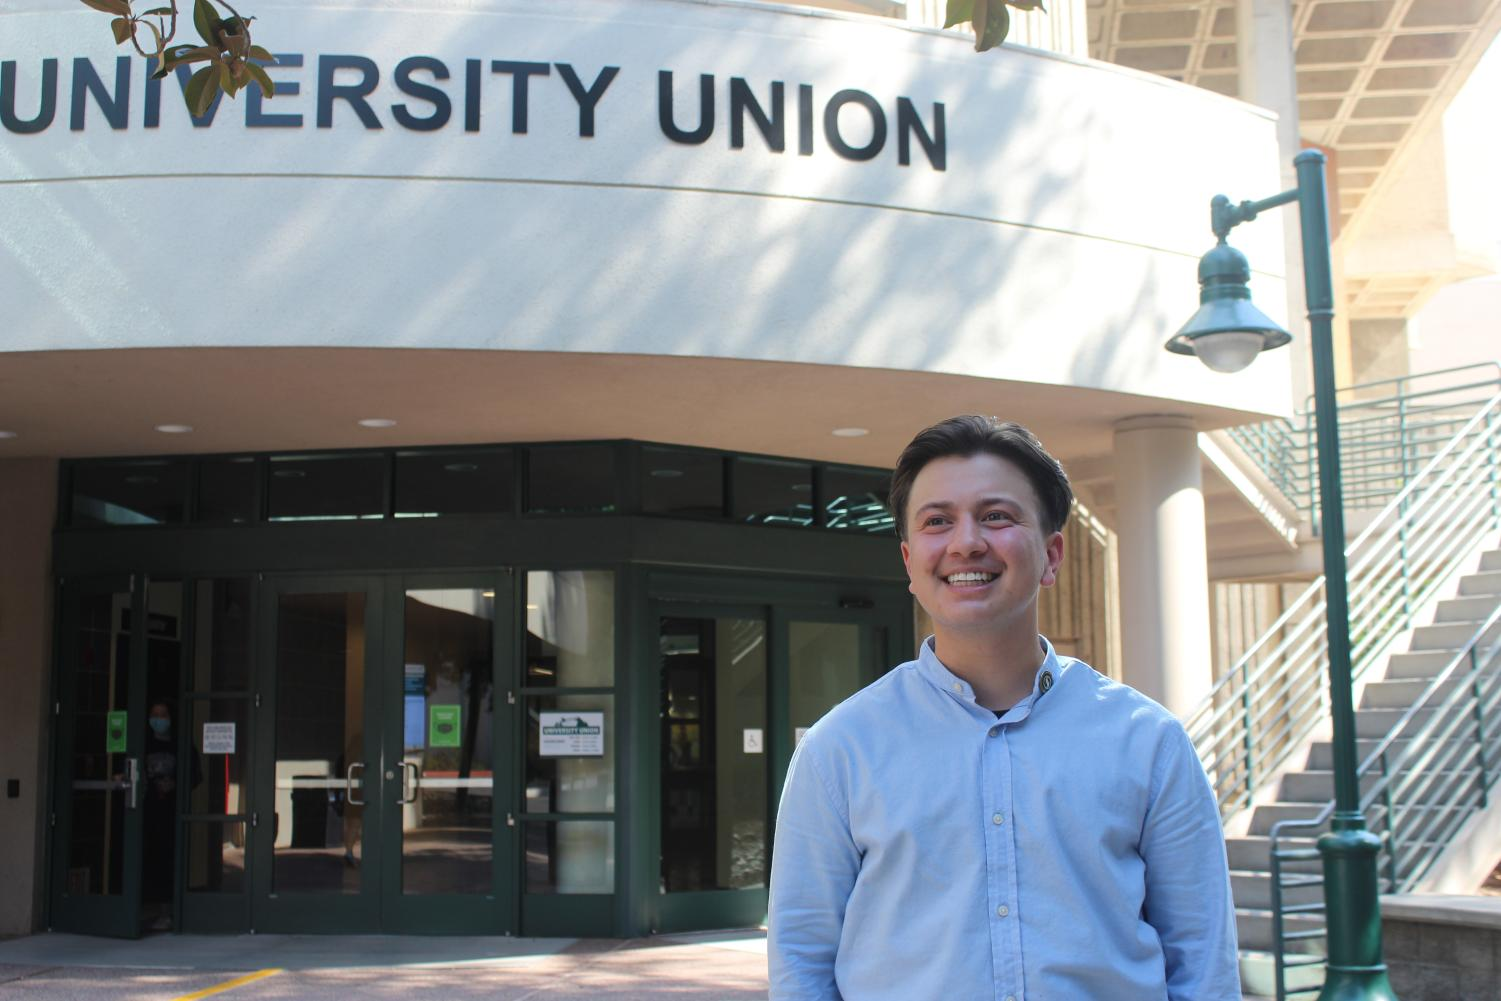 25-year-old Ezra Cabrera, standing in front of the University Union building on September 21, 2021. Cabrera is a second year Master's student at Sac State and plans to continue advocating for the LGBTQ+ community.